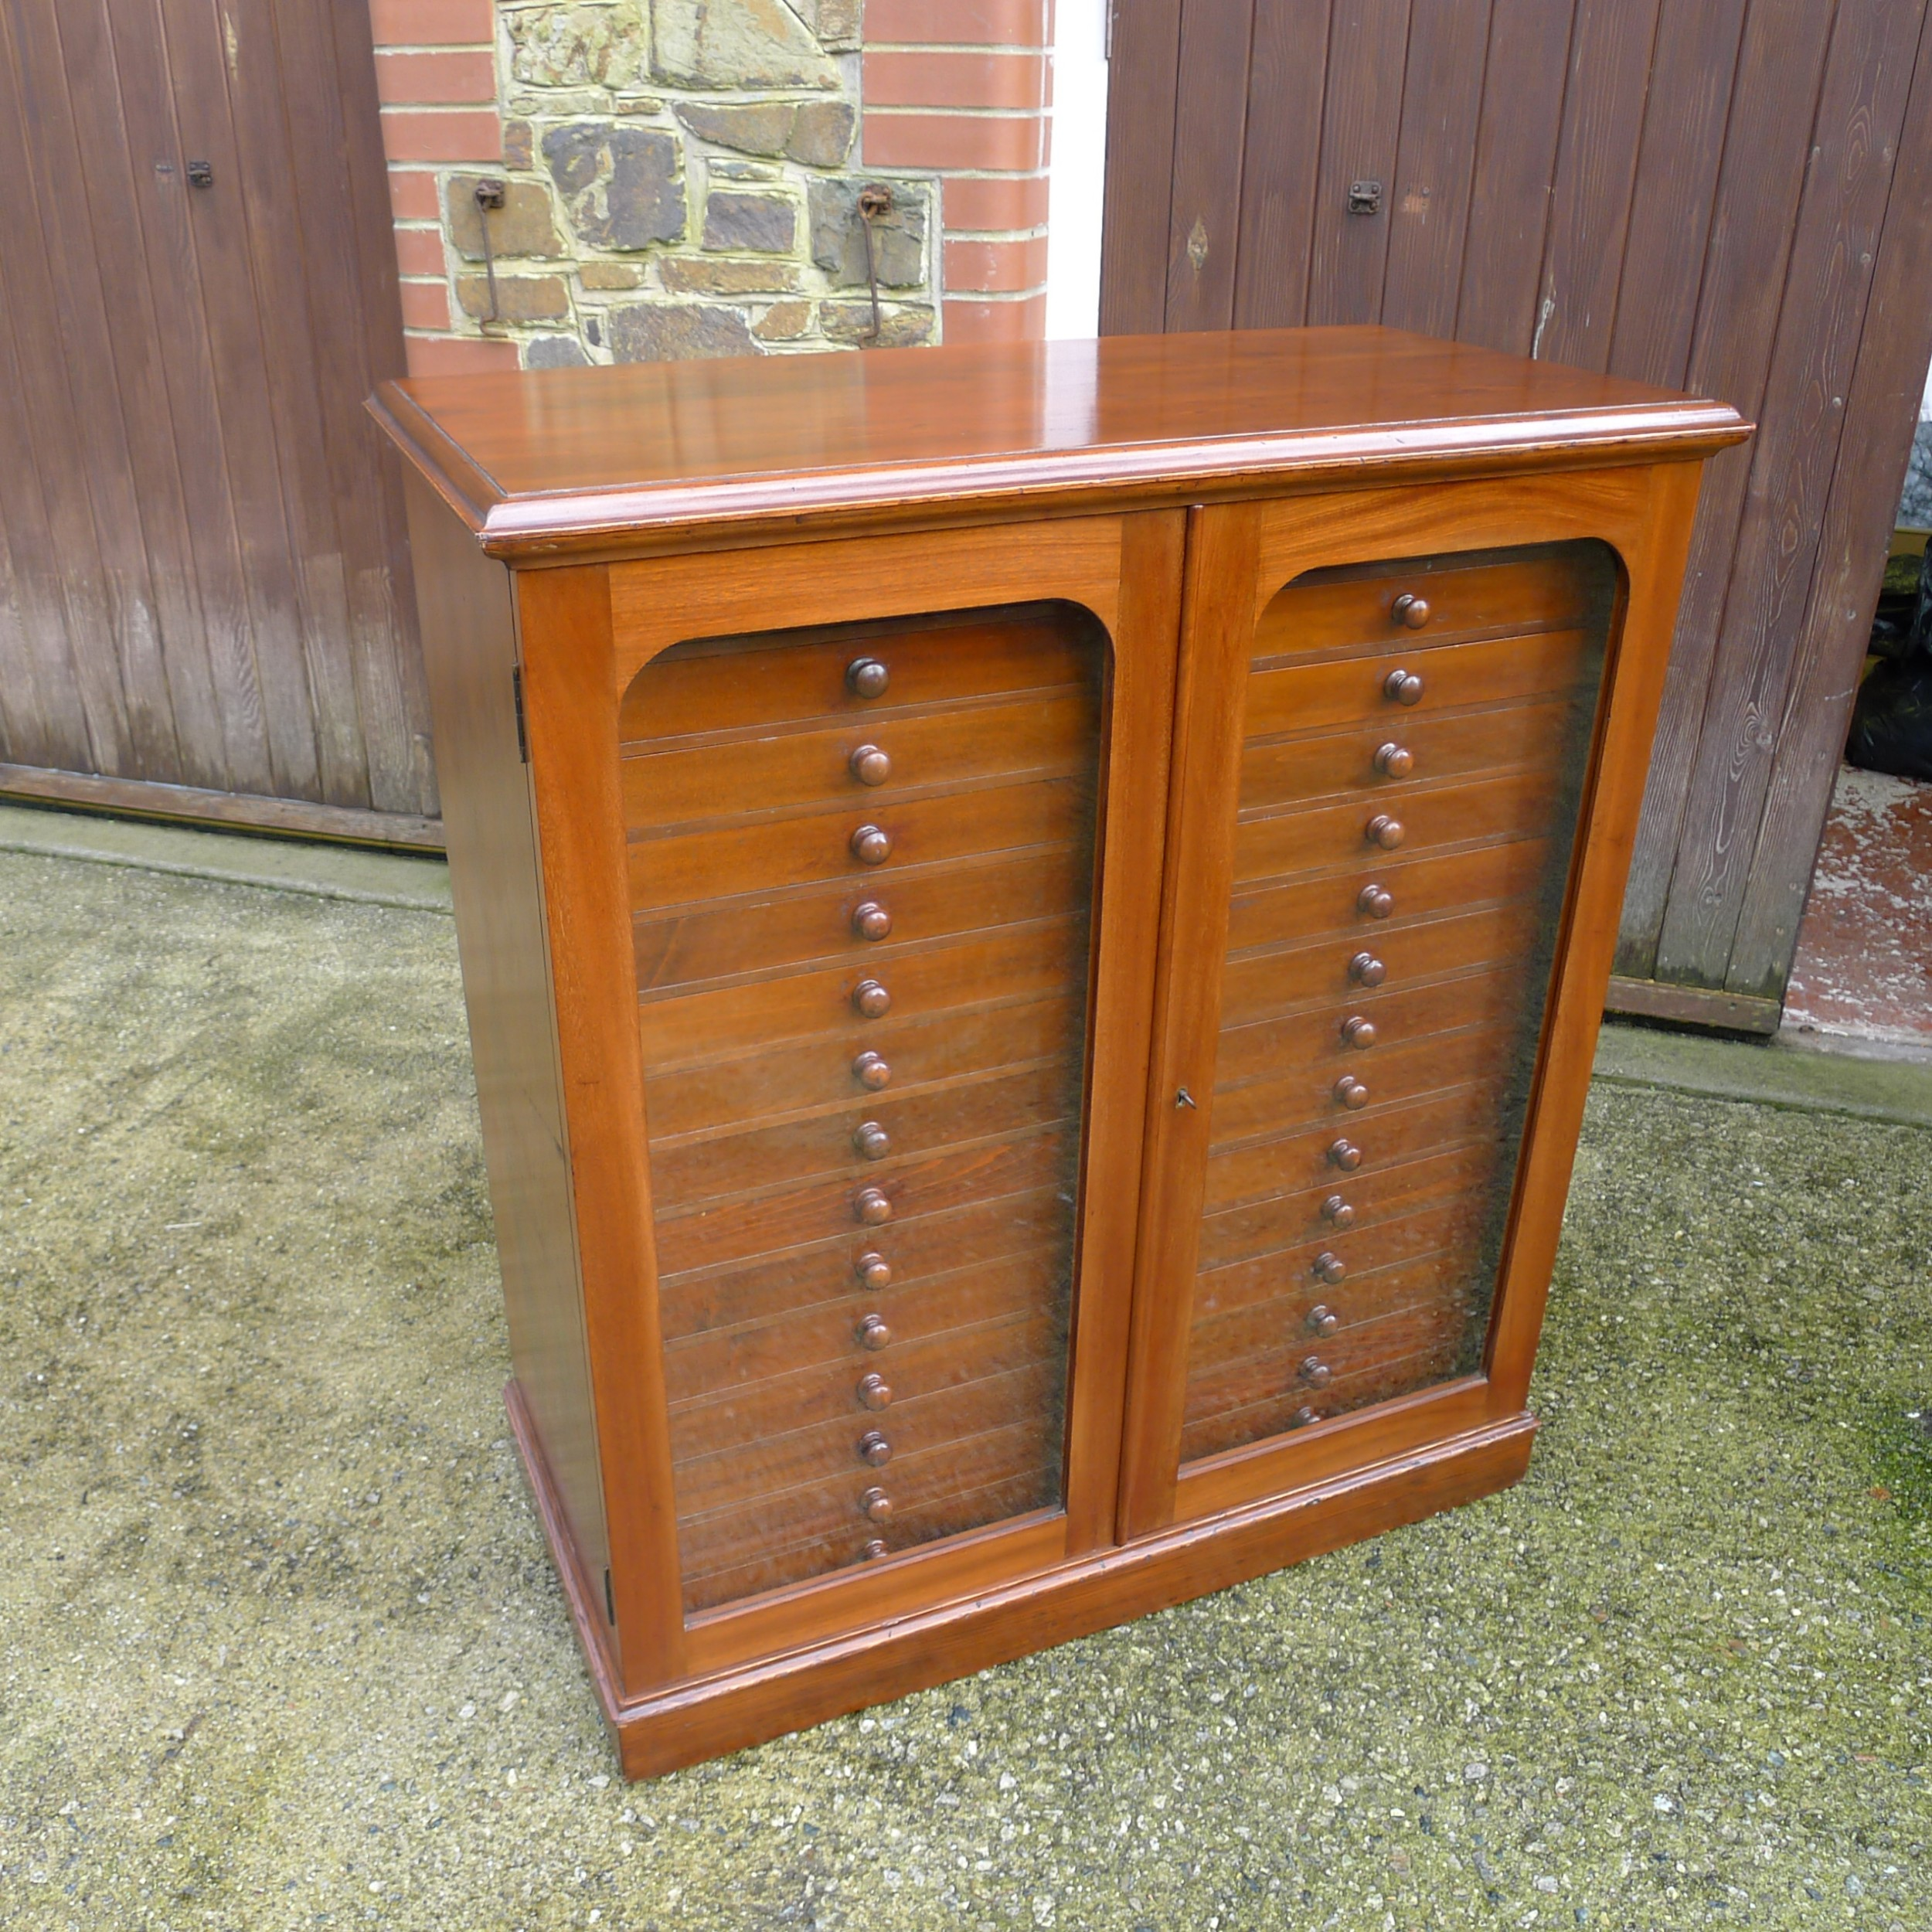 a good 30 drawer watkins doncaster collectors specimen cabinet in satin walnut and mahogany circa 1900